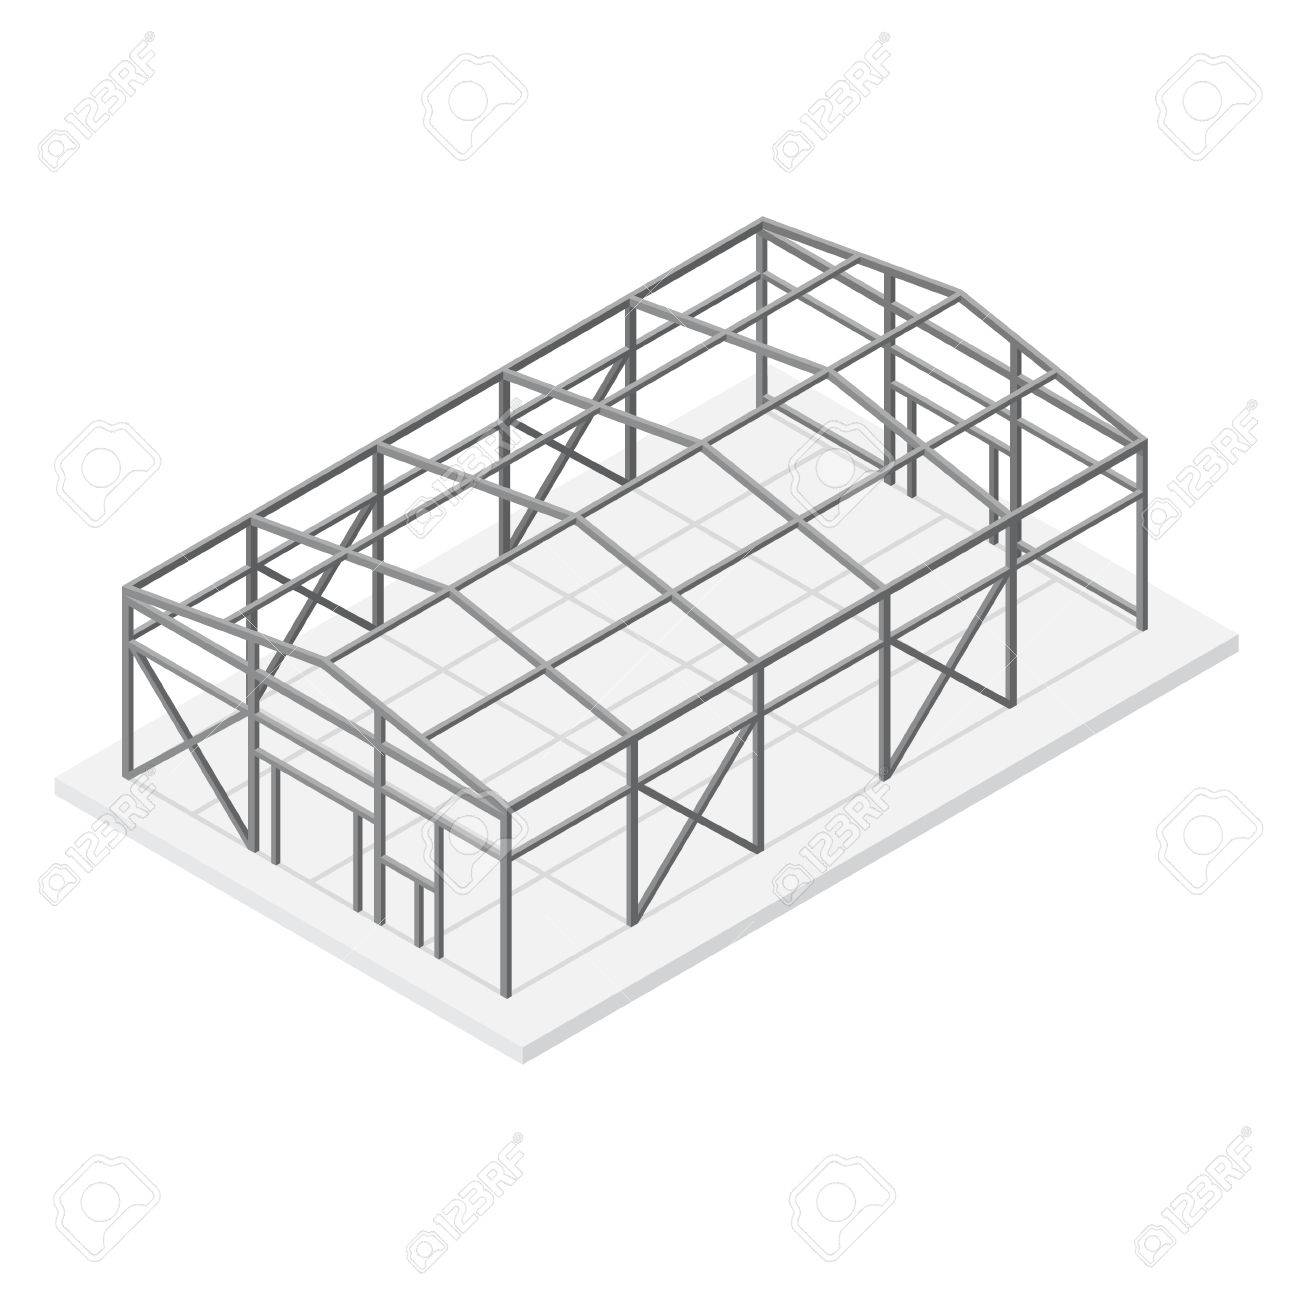 warehouse drawing at getdrawings com